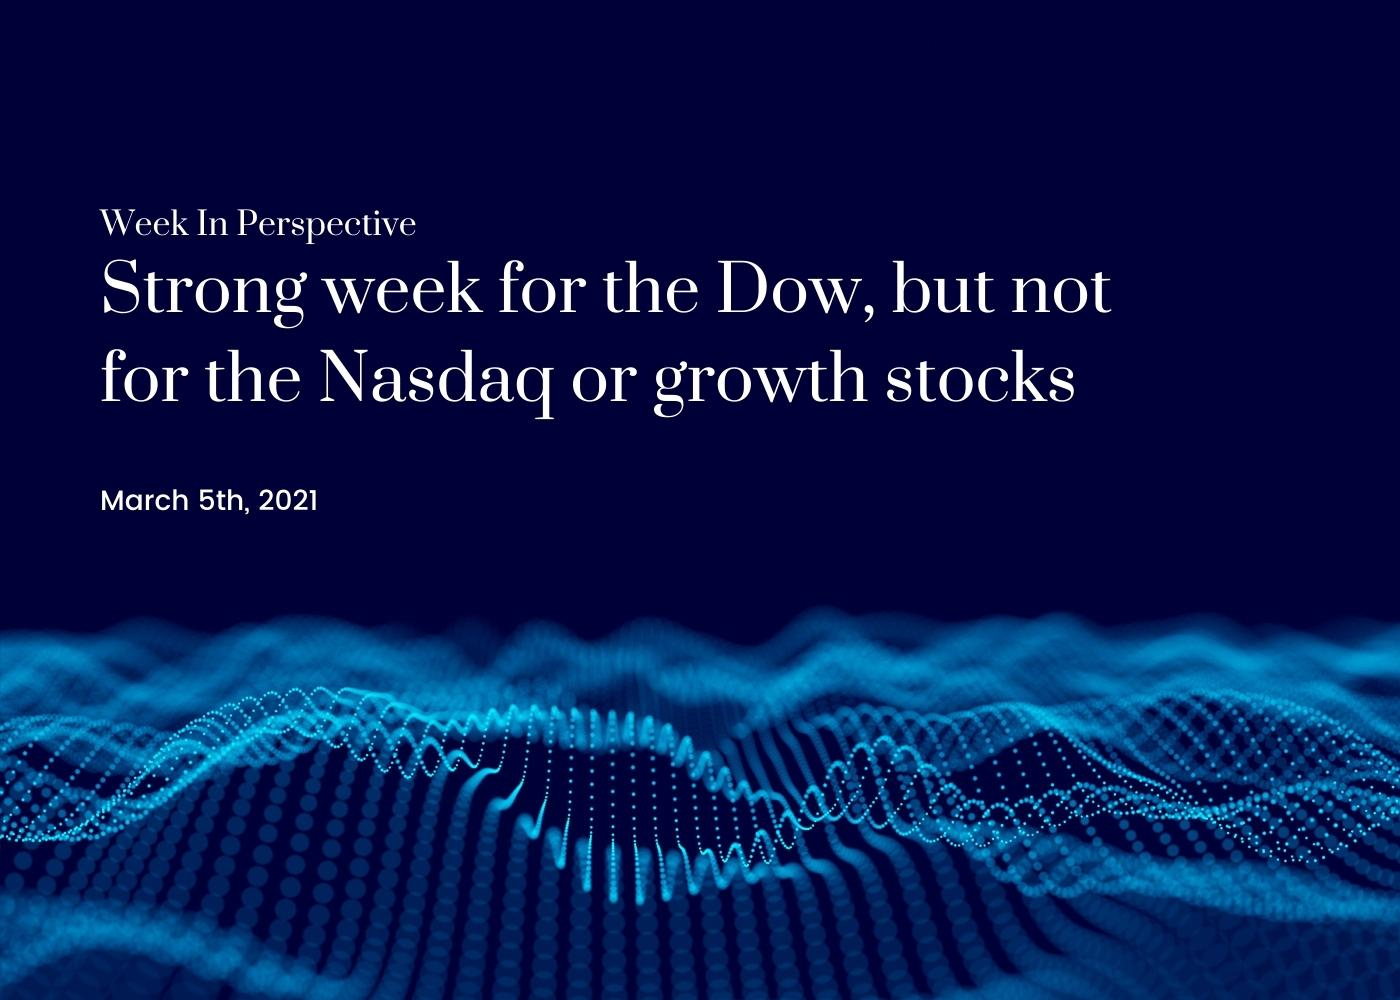 Week In Perspective March 5, 2021: Strong week for the Dow, but not for the Nasdaq or growth stocks Thumbnail